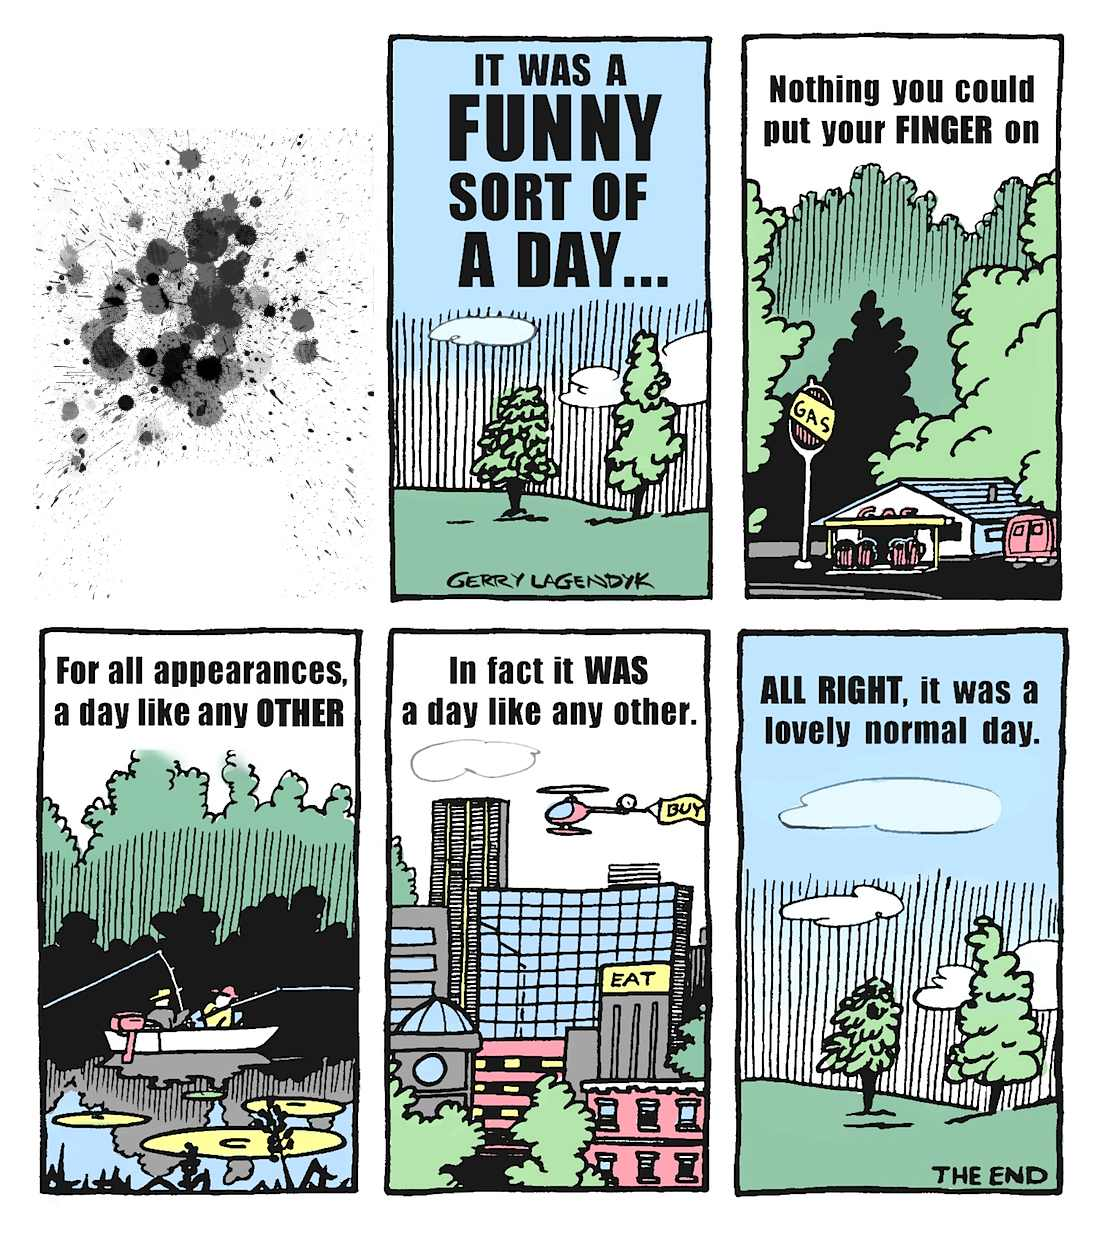 Stranger Than Truth, a funny day cartoon